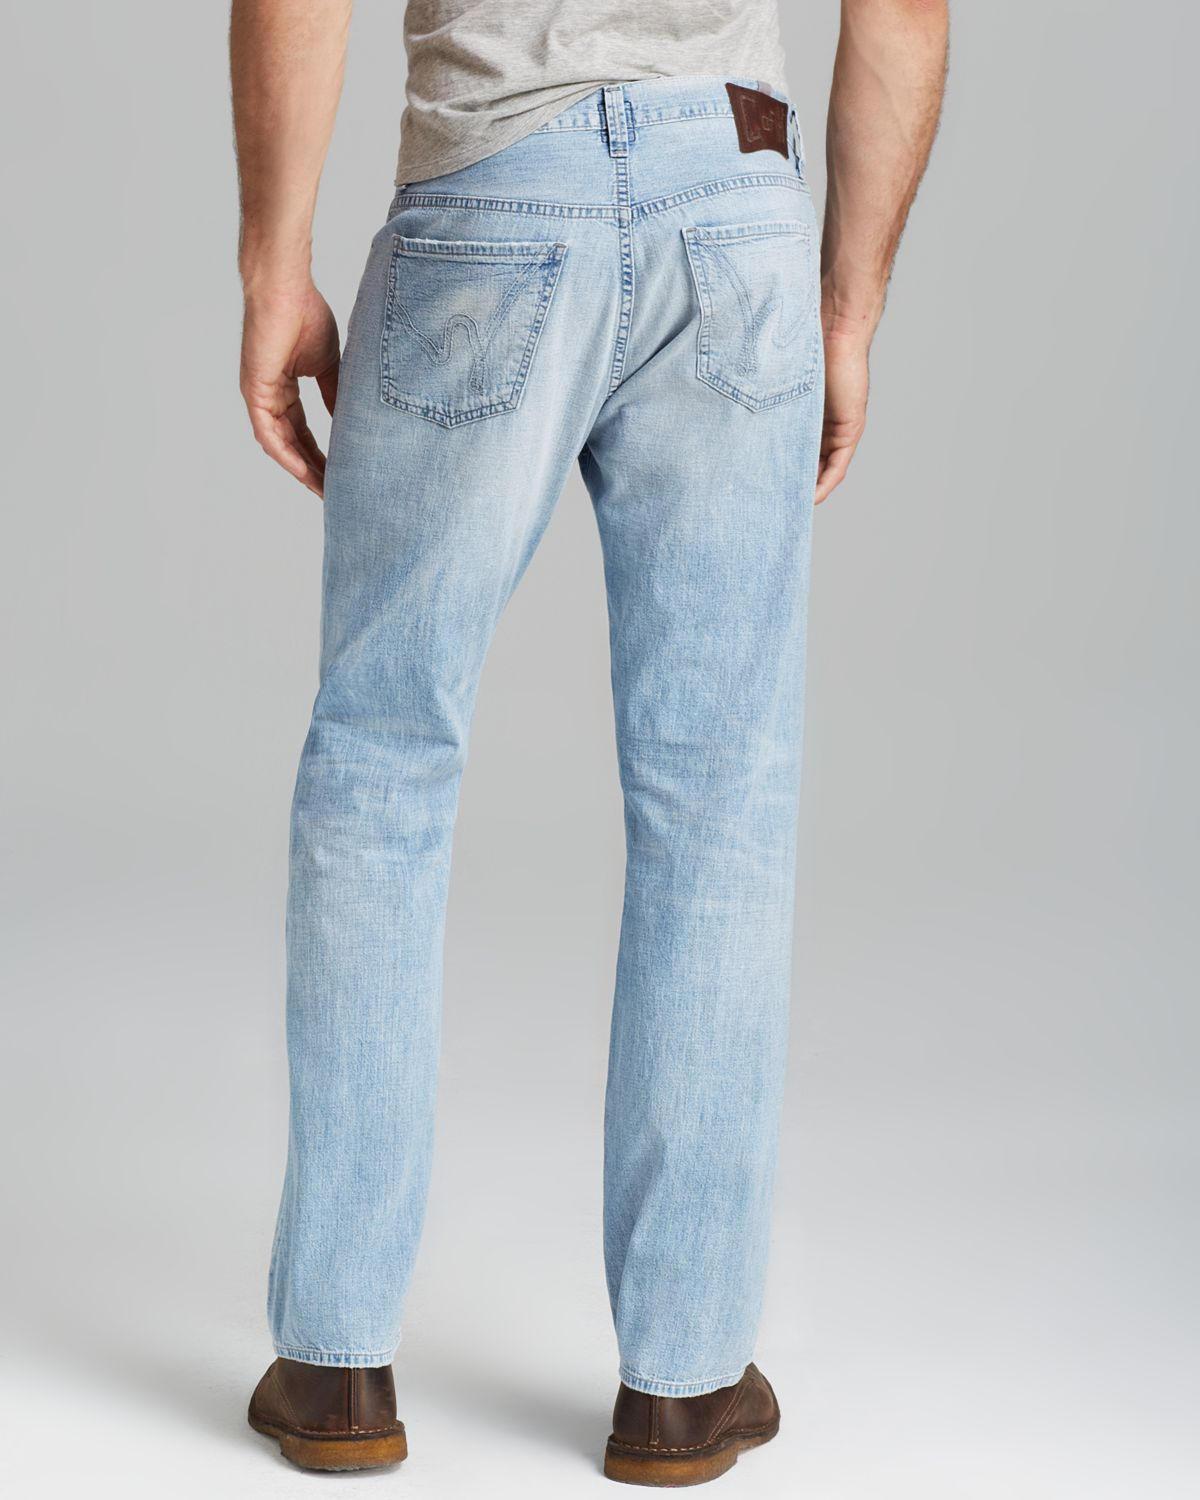 Citizens of humanity Jeans - Perfect Relaxed Fit In White Wash in ...